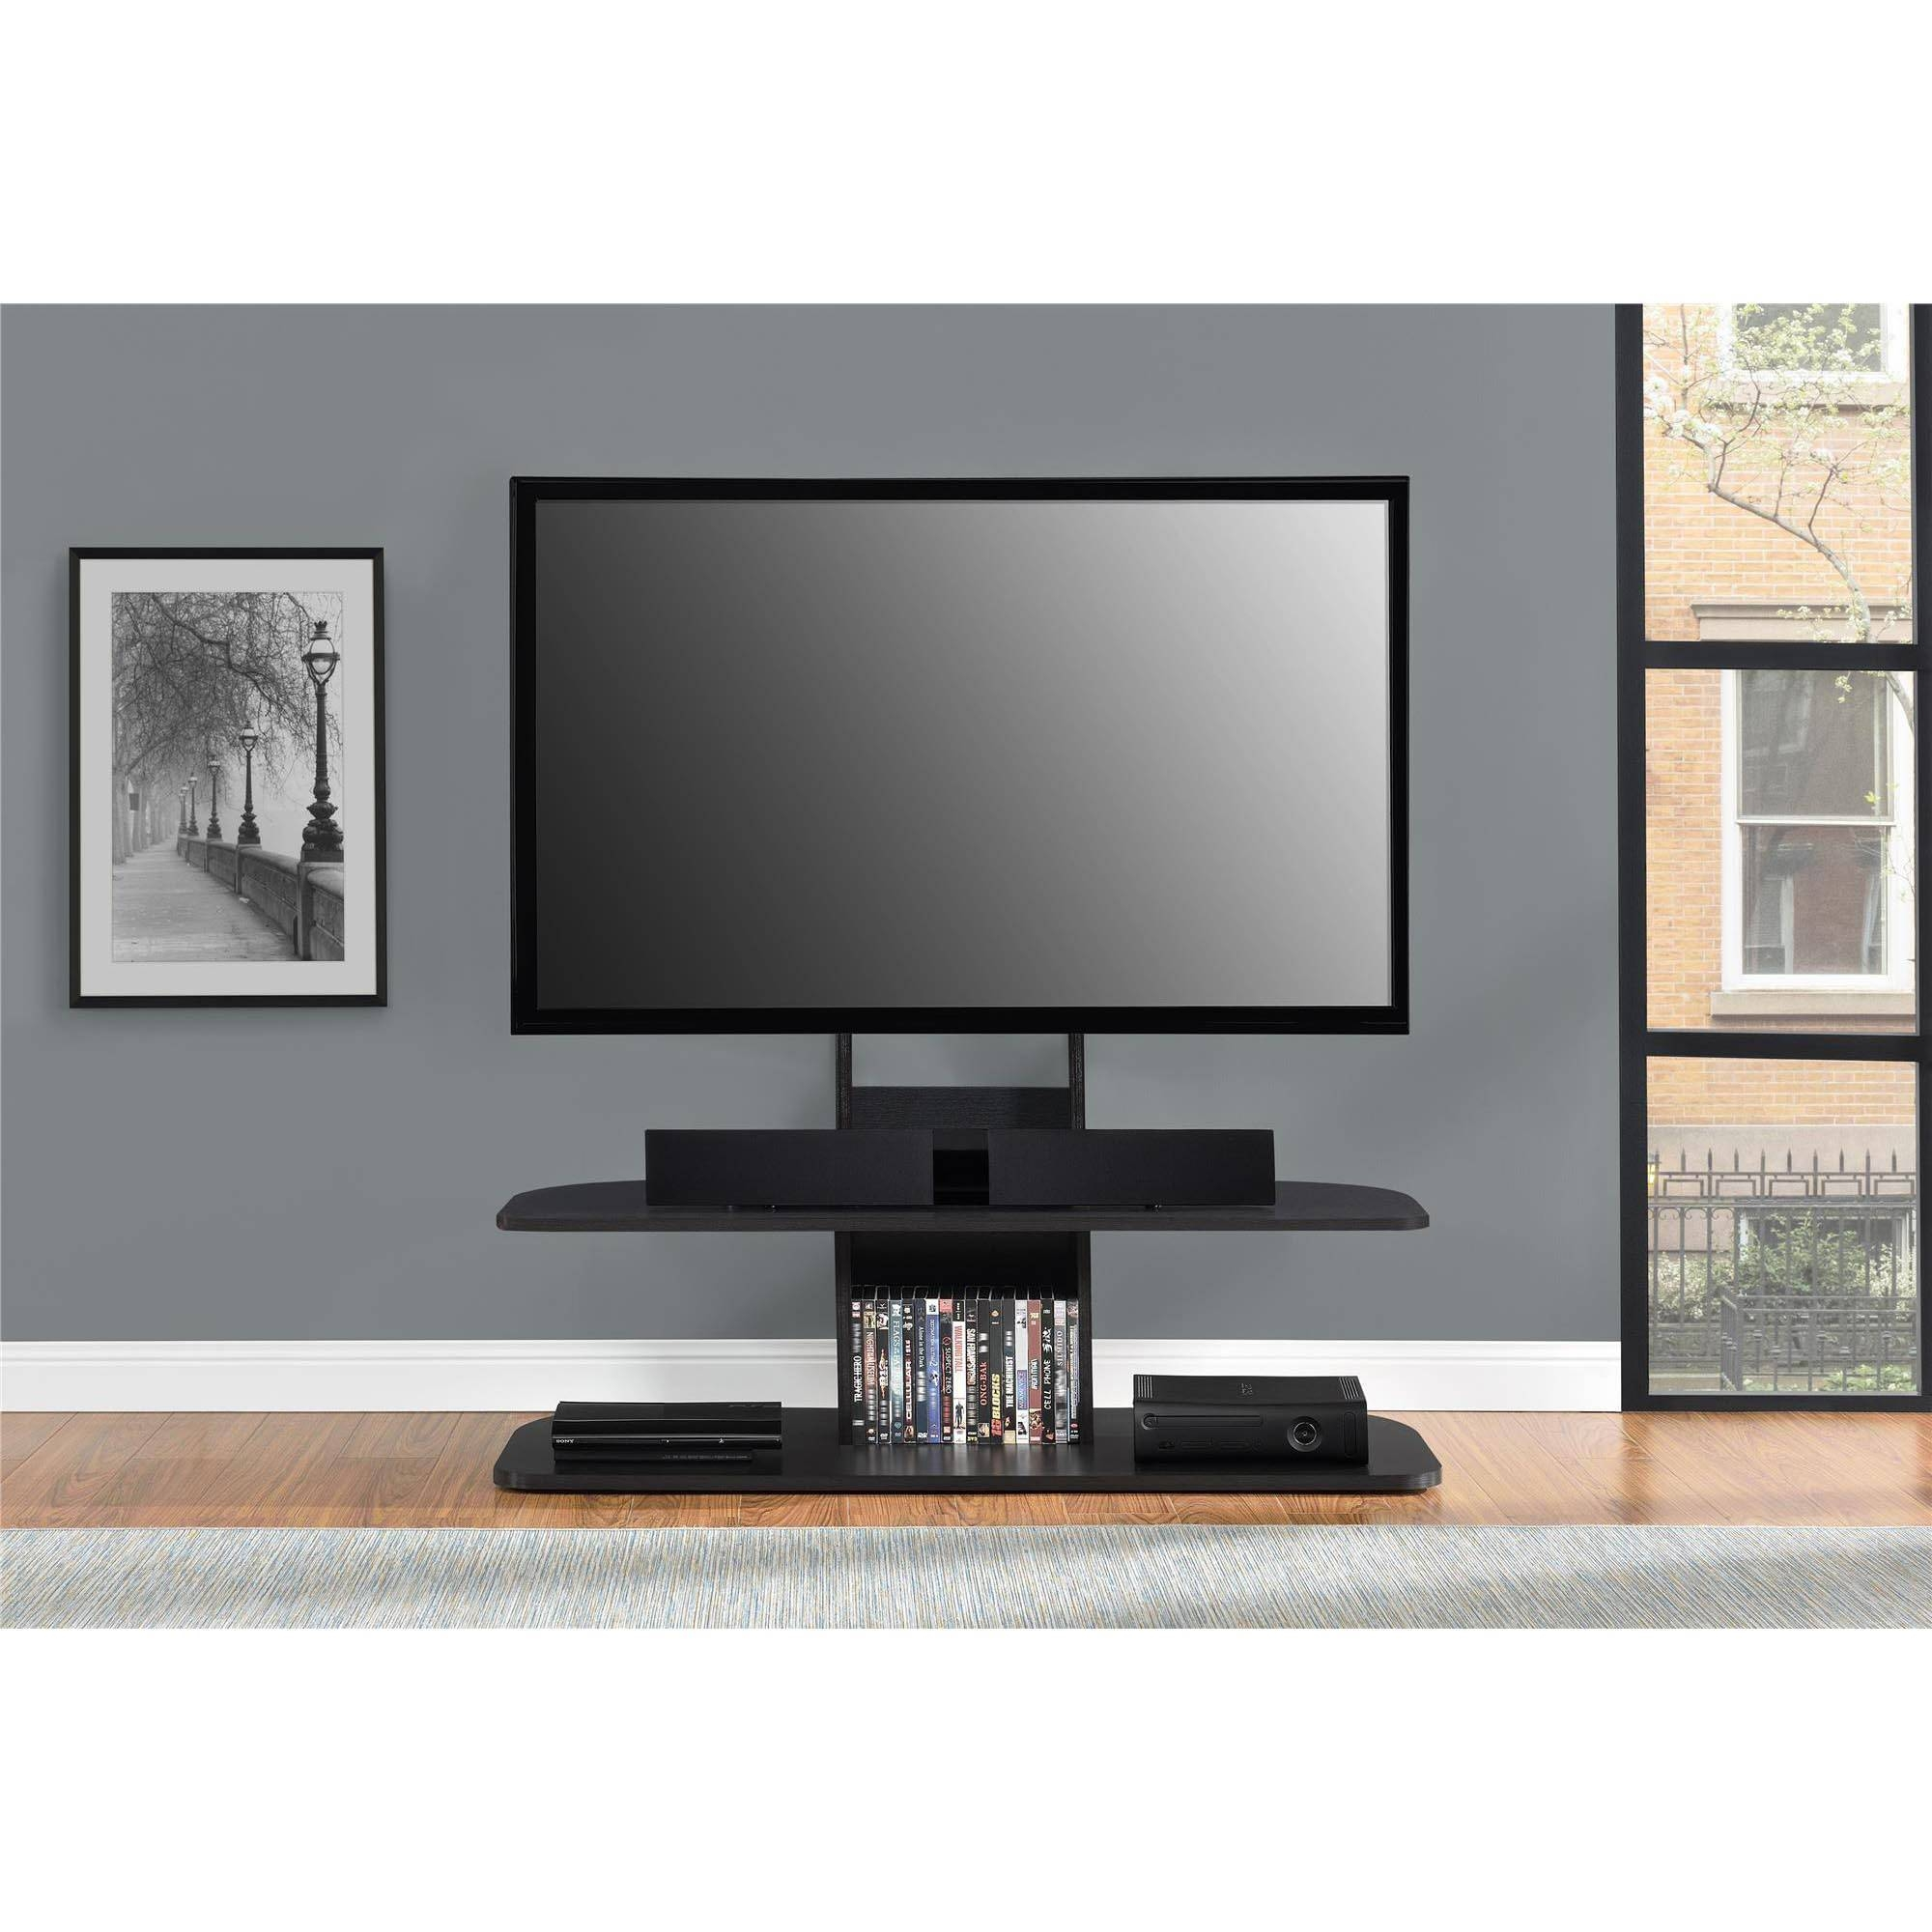 "Whalen 2 Shelf Tv Stand With Mount For Tvs Up To 50"" - Walmart inside Tv Stands For Tube Tvs (Image 15 of 15)"